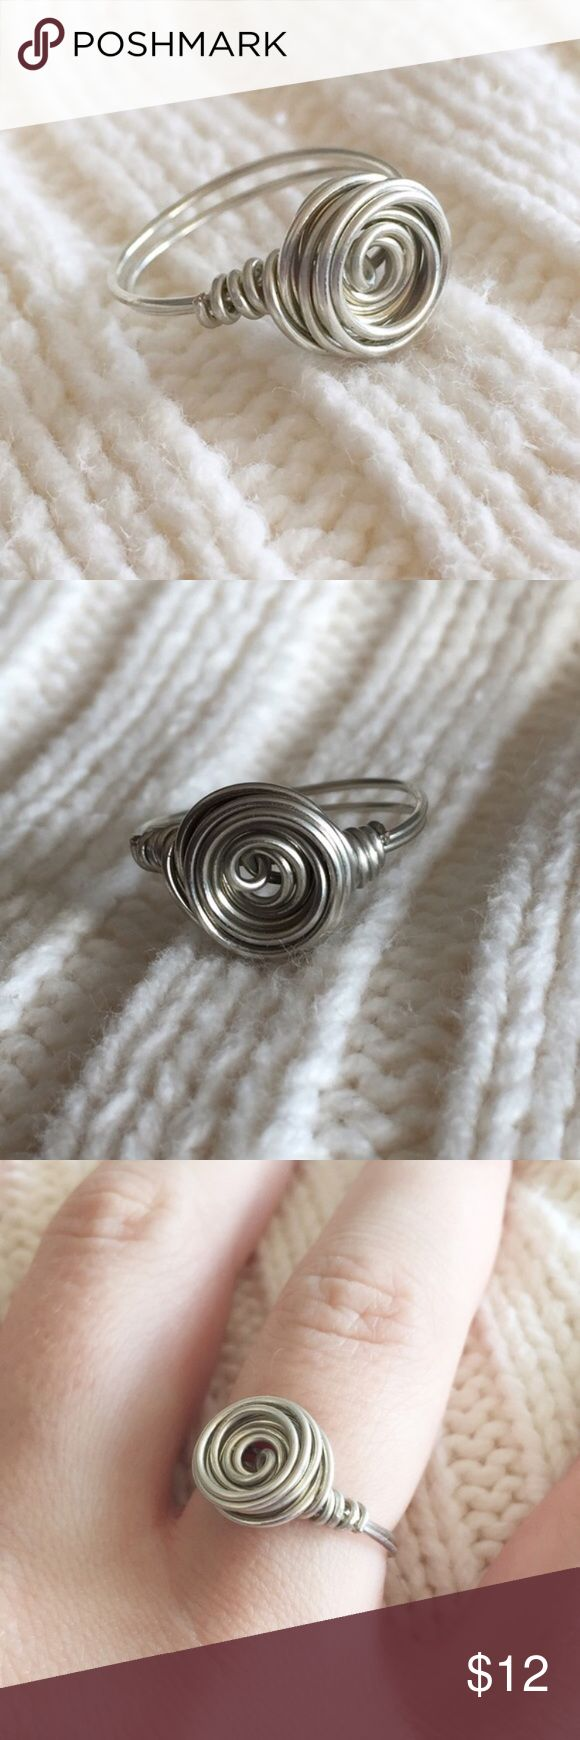 2561 best Wire Rings images on Pinterest   Jewel, Jewelry ideas and ...